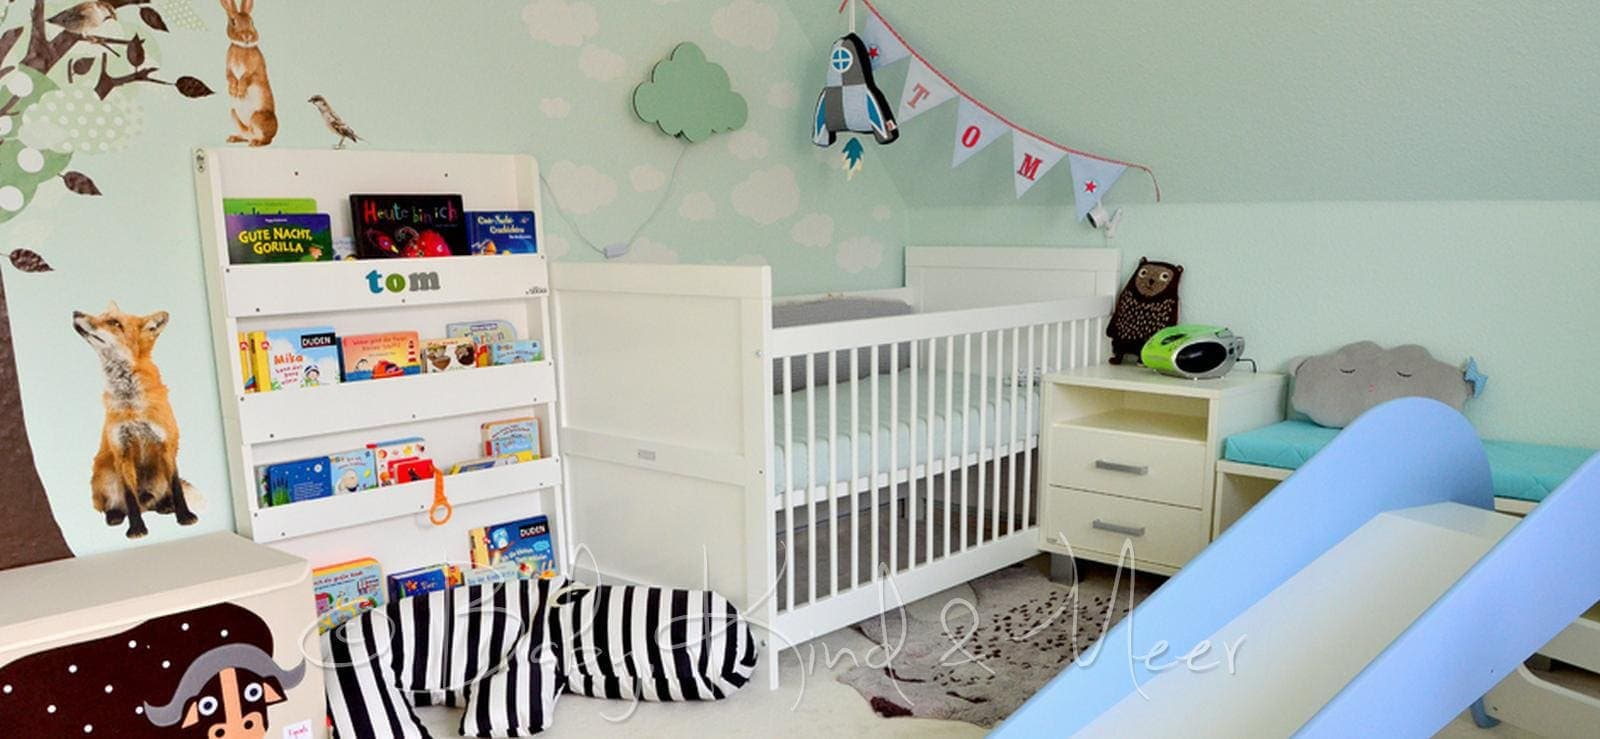 toms kinderzimmer roomtour familienleben kinderzimmer co baby kind und meer. Black Bedroom Furniture Sets. Home Design Ideas